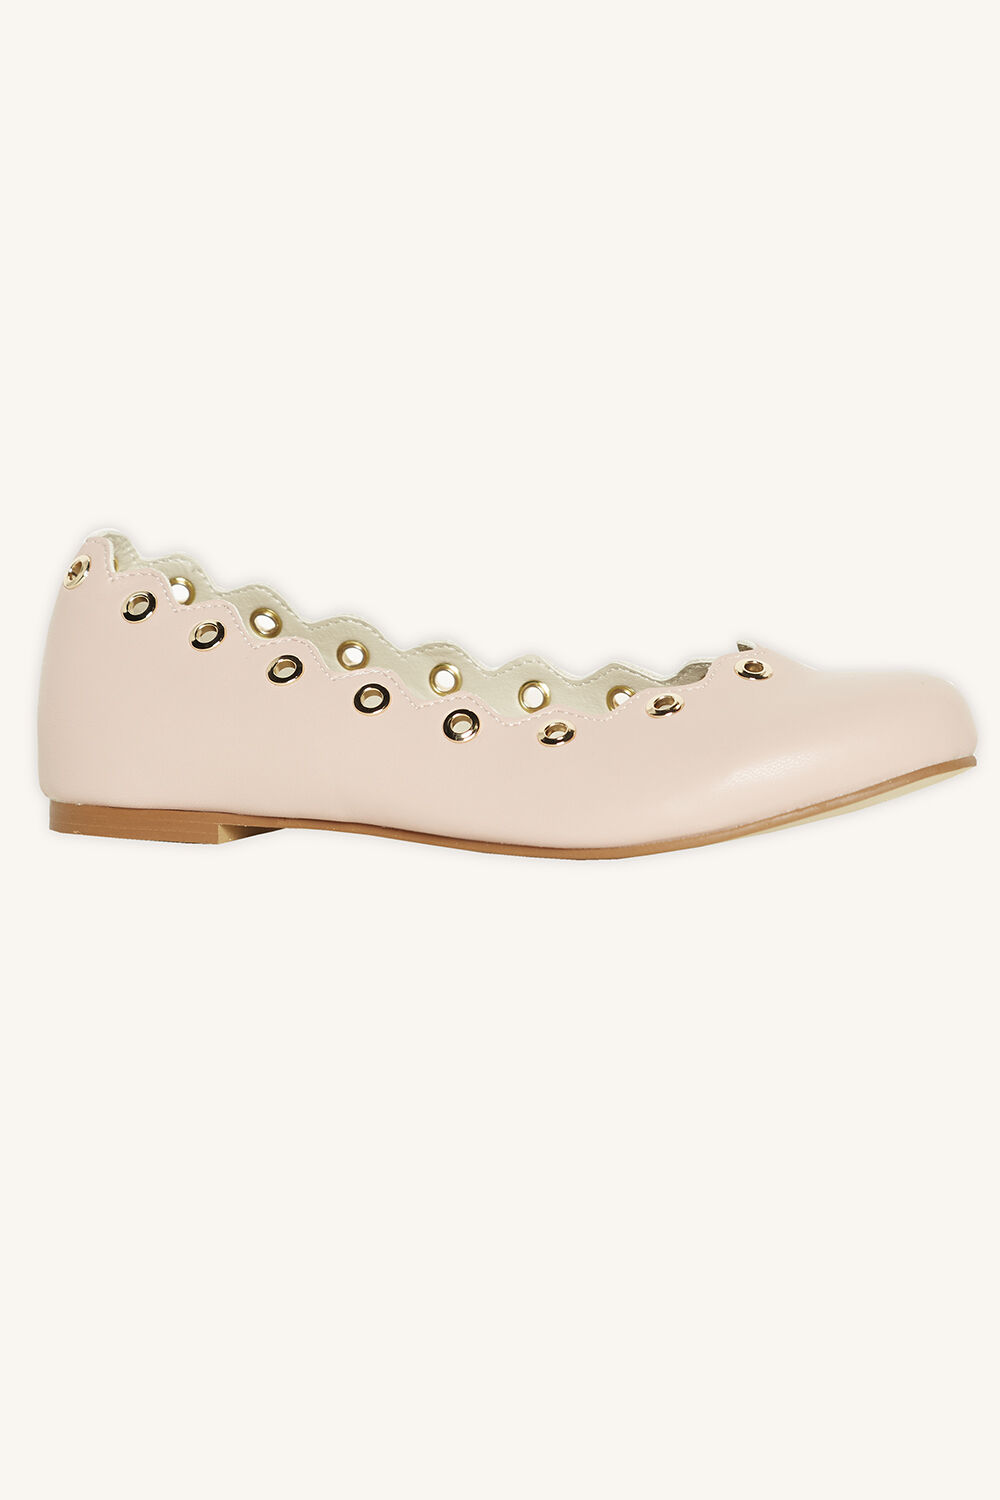 EYELET FLAT in colour PINK CARNATION